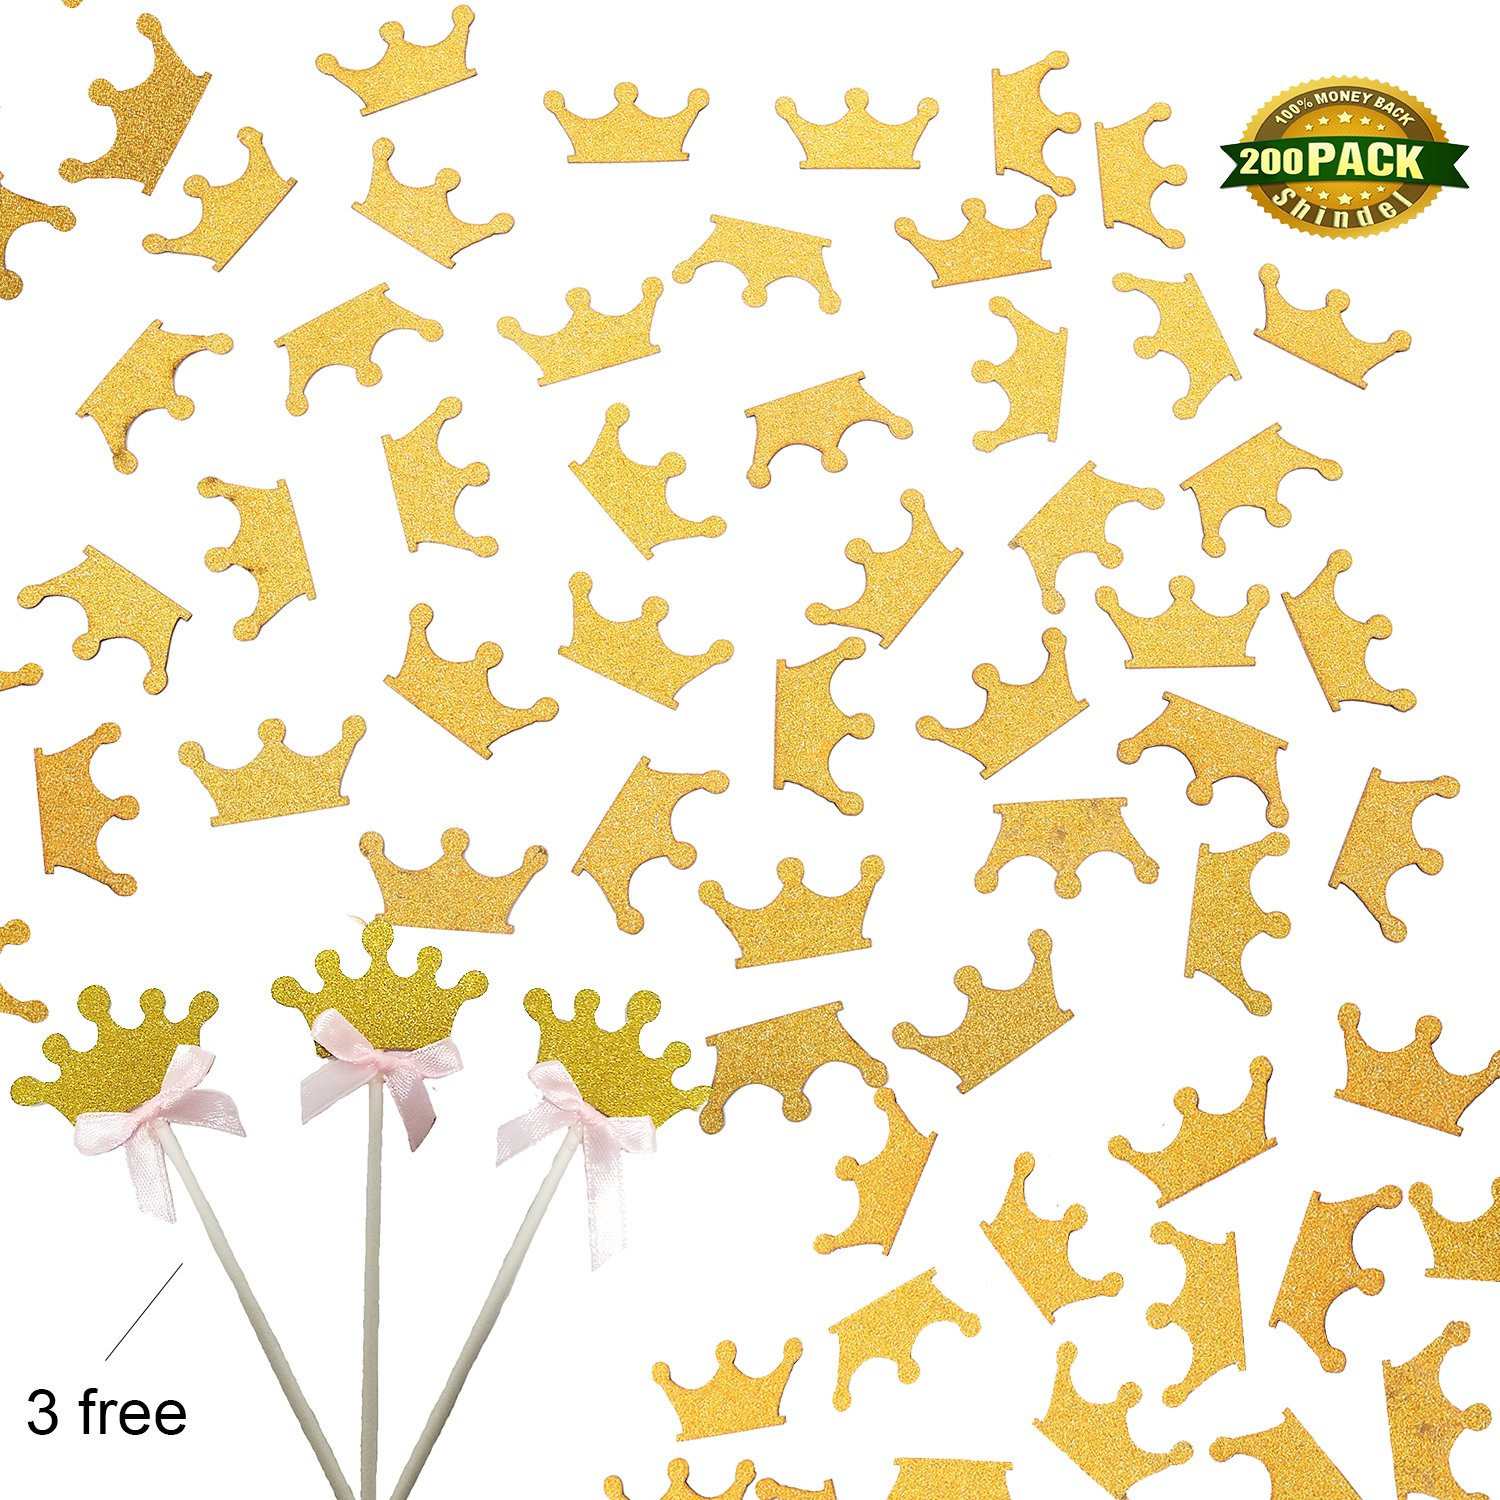 Confetti Gold Glitter Crown, Royal Prince Birthday Party Supplies Tiara Confetti & Cupcake Toppers For Birthday Party Baby Shower, 200 PCS